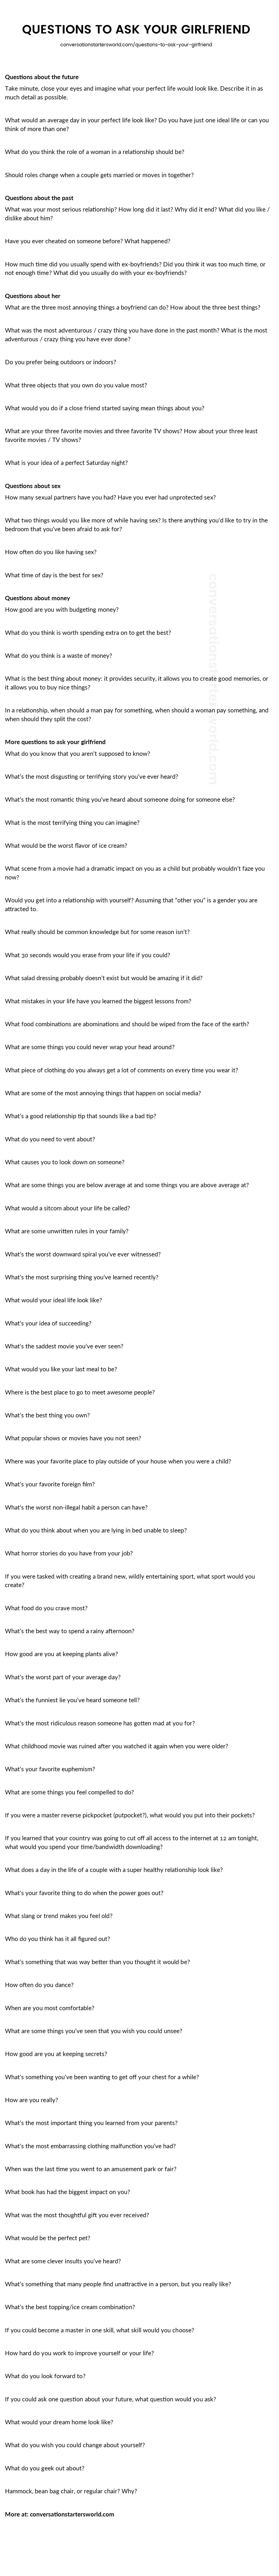 questions to ask a girl while chatting